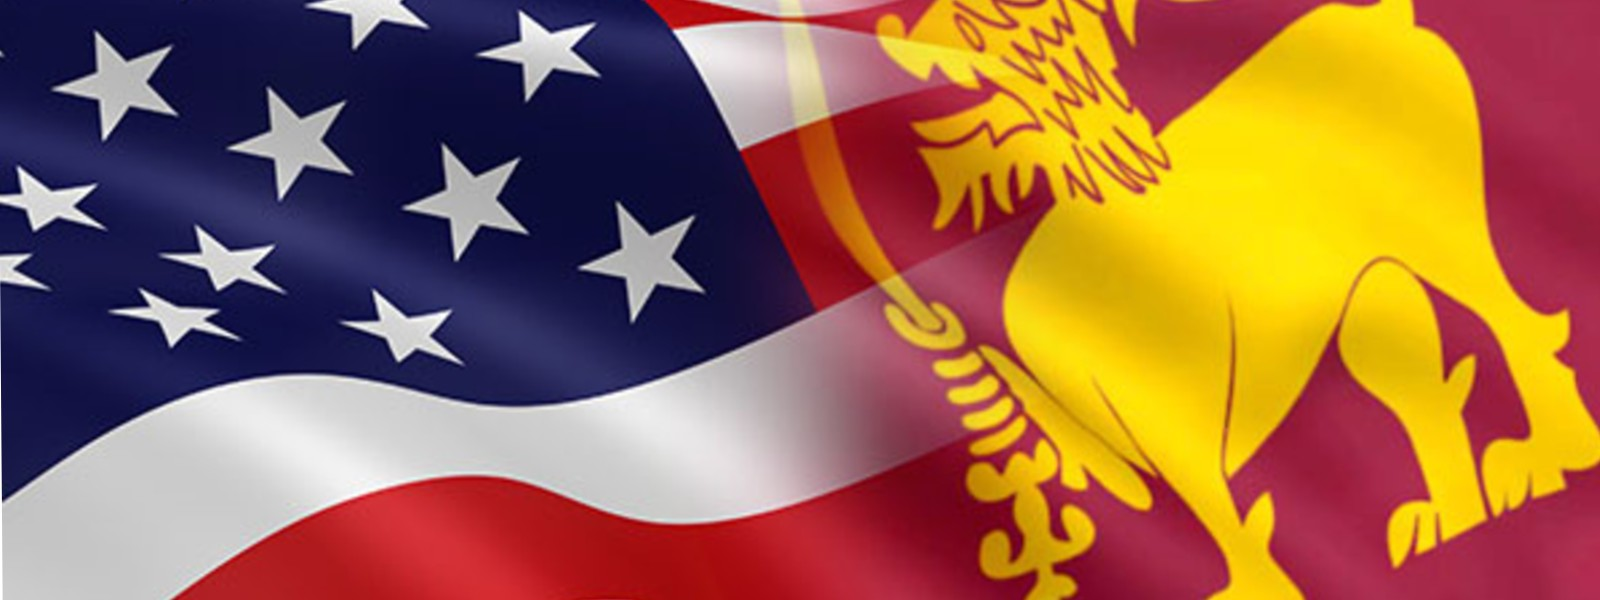 The US offers $1.3 million to Sri Lanka to help fight COVID-19